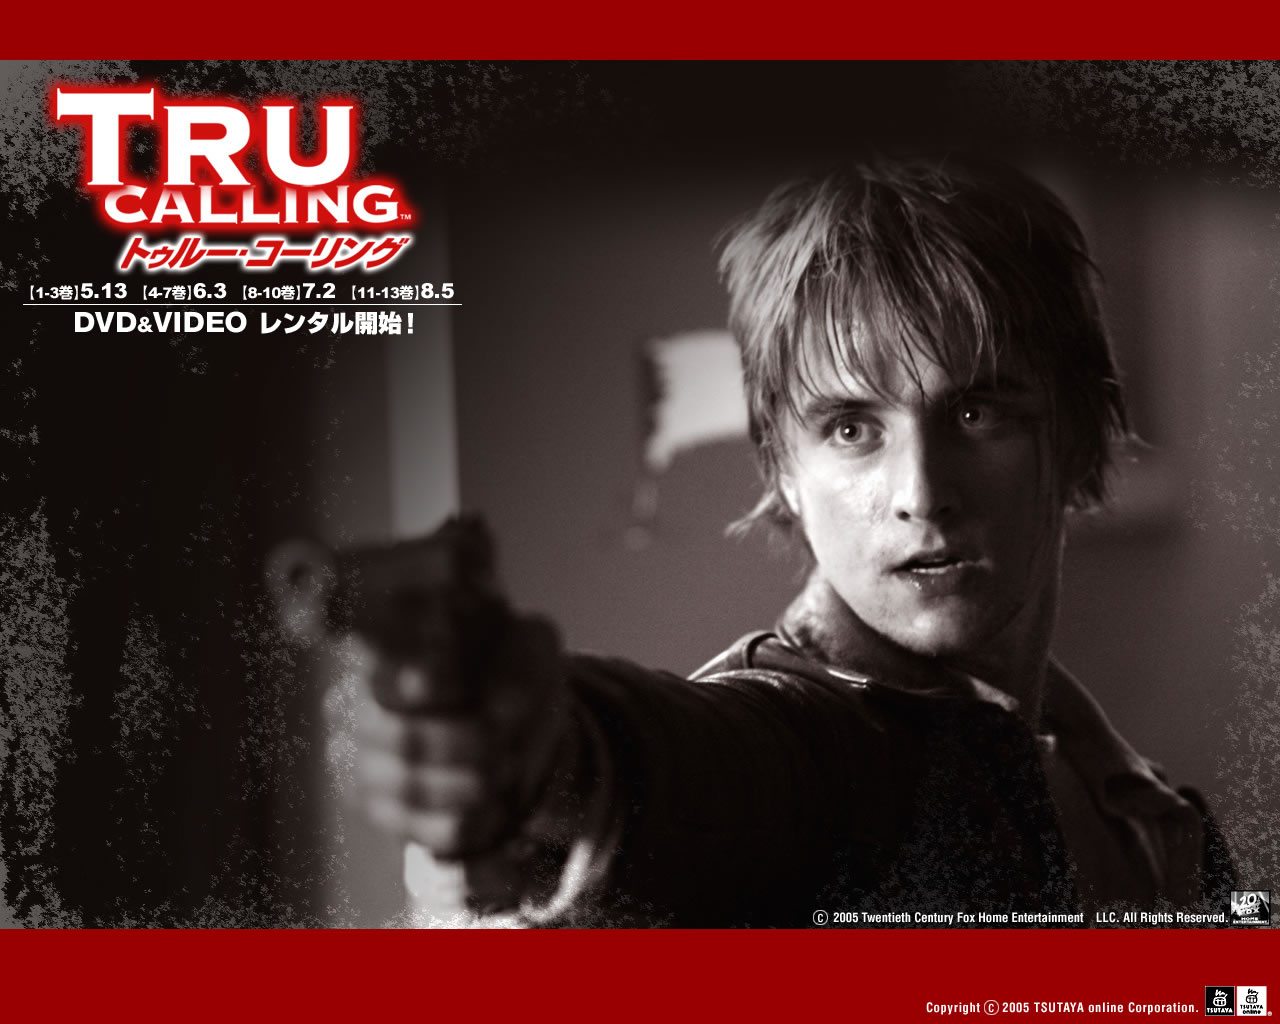 Harrison Davies - Tru Calling Wallpaper (257685) - Fanpop